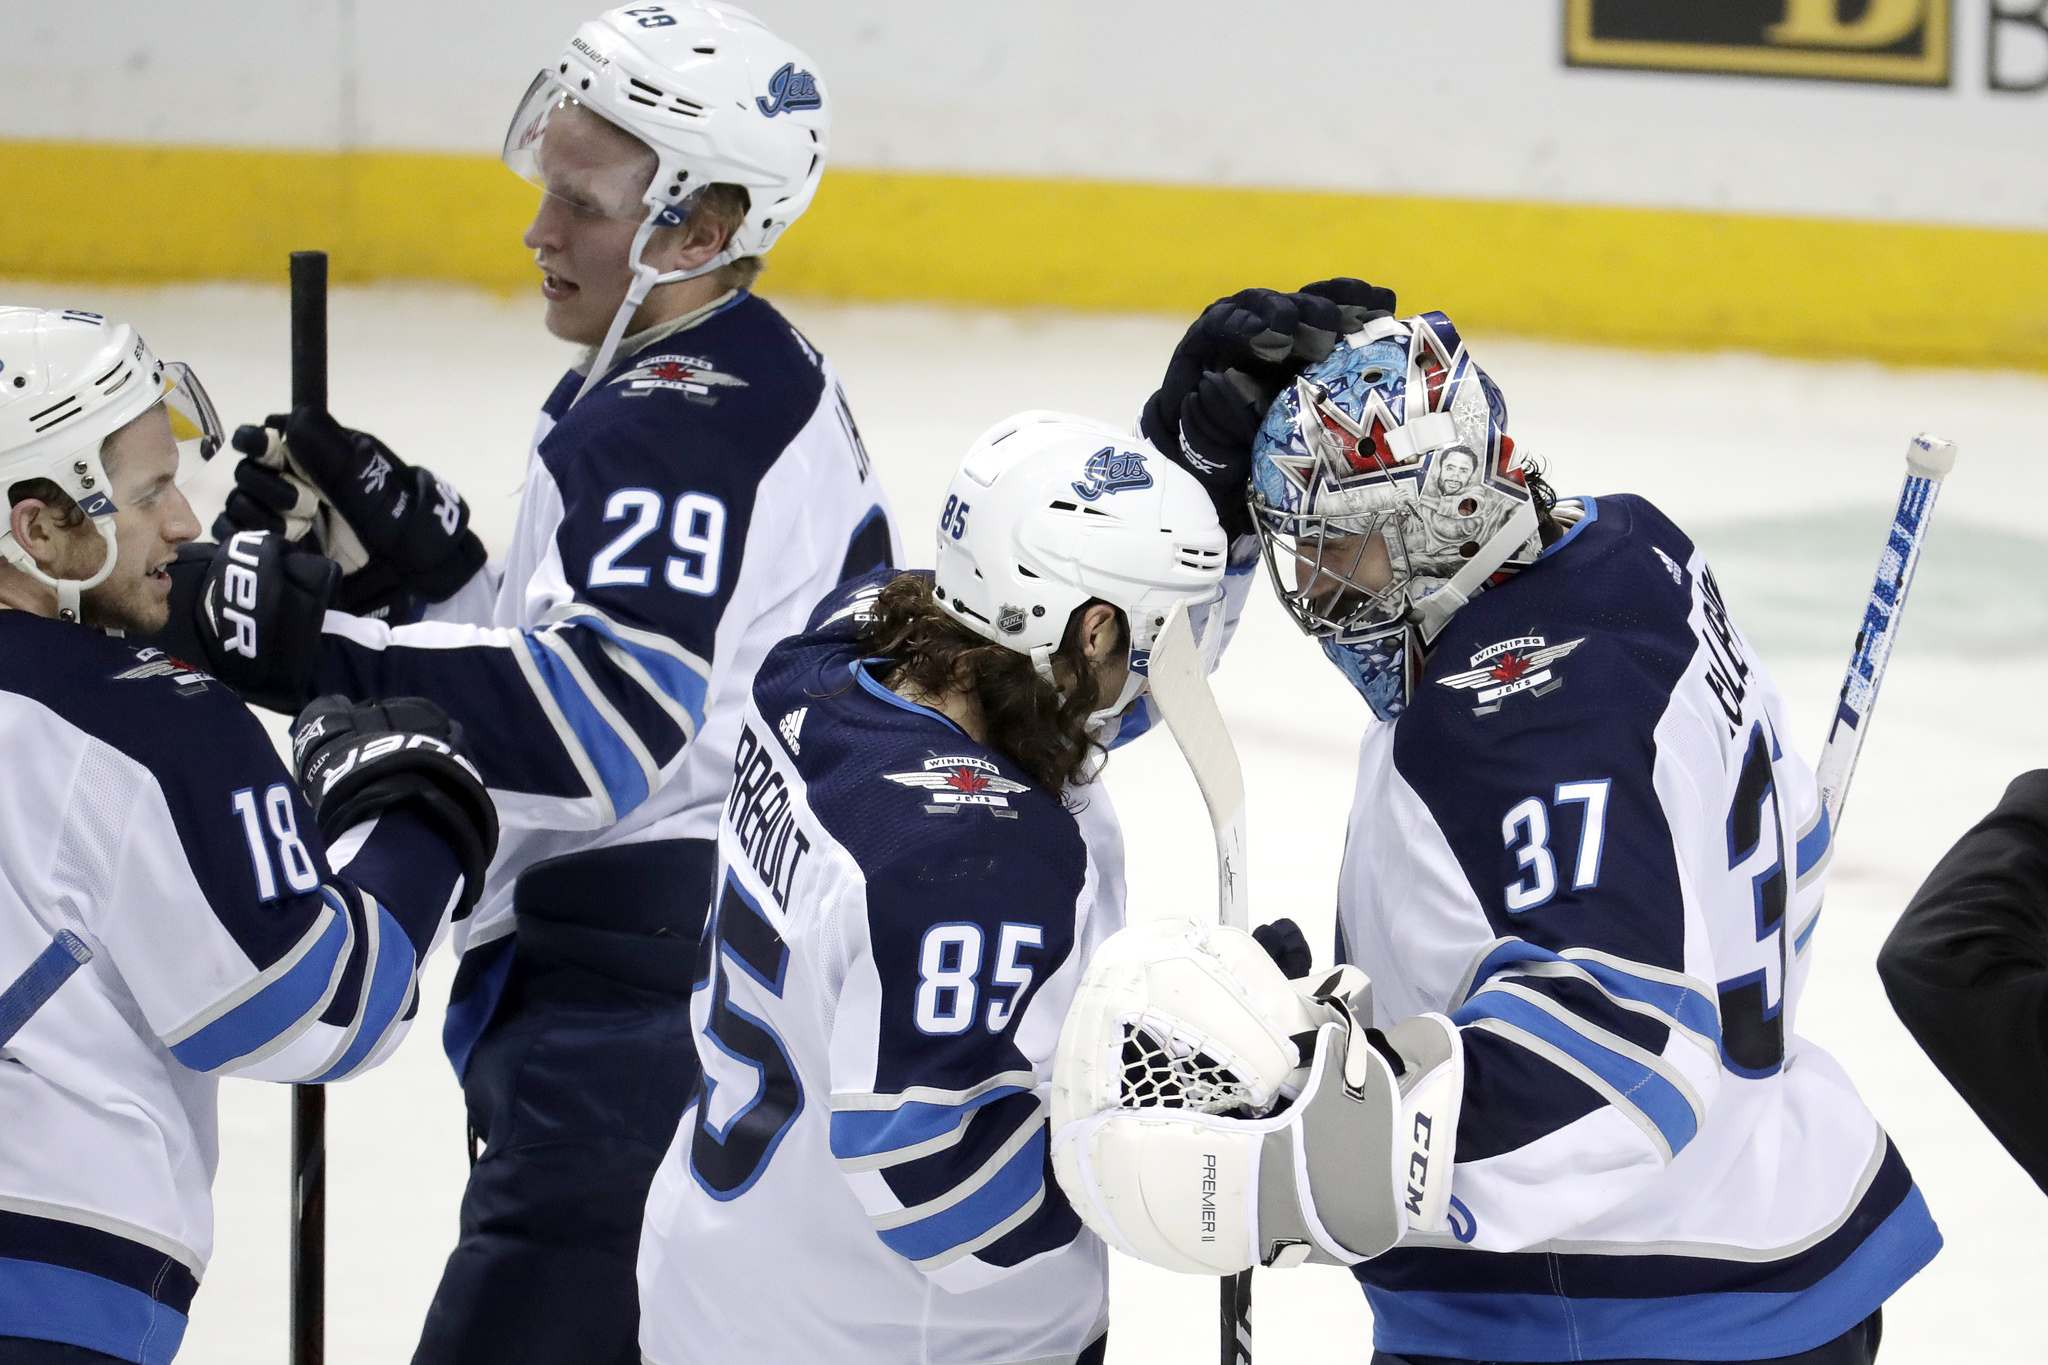 The Winnipeg Jets won all three games during the team&#39;s trip to the east coast. (Julio Cortez / The Associated Press files)</p>